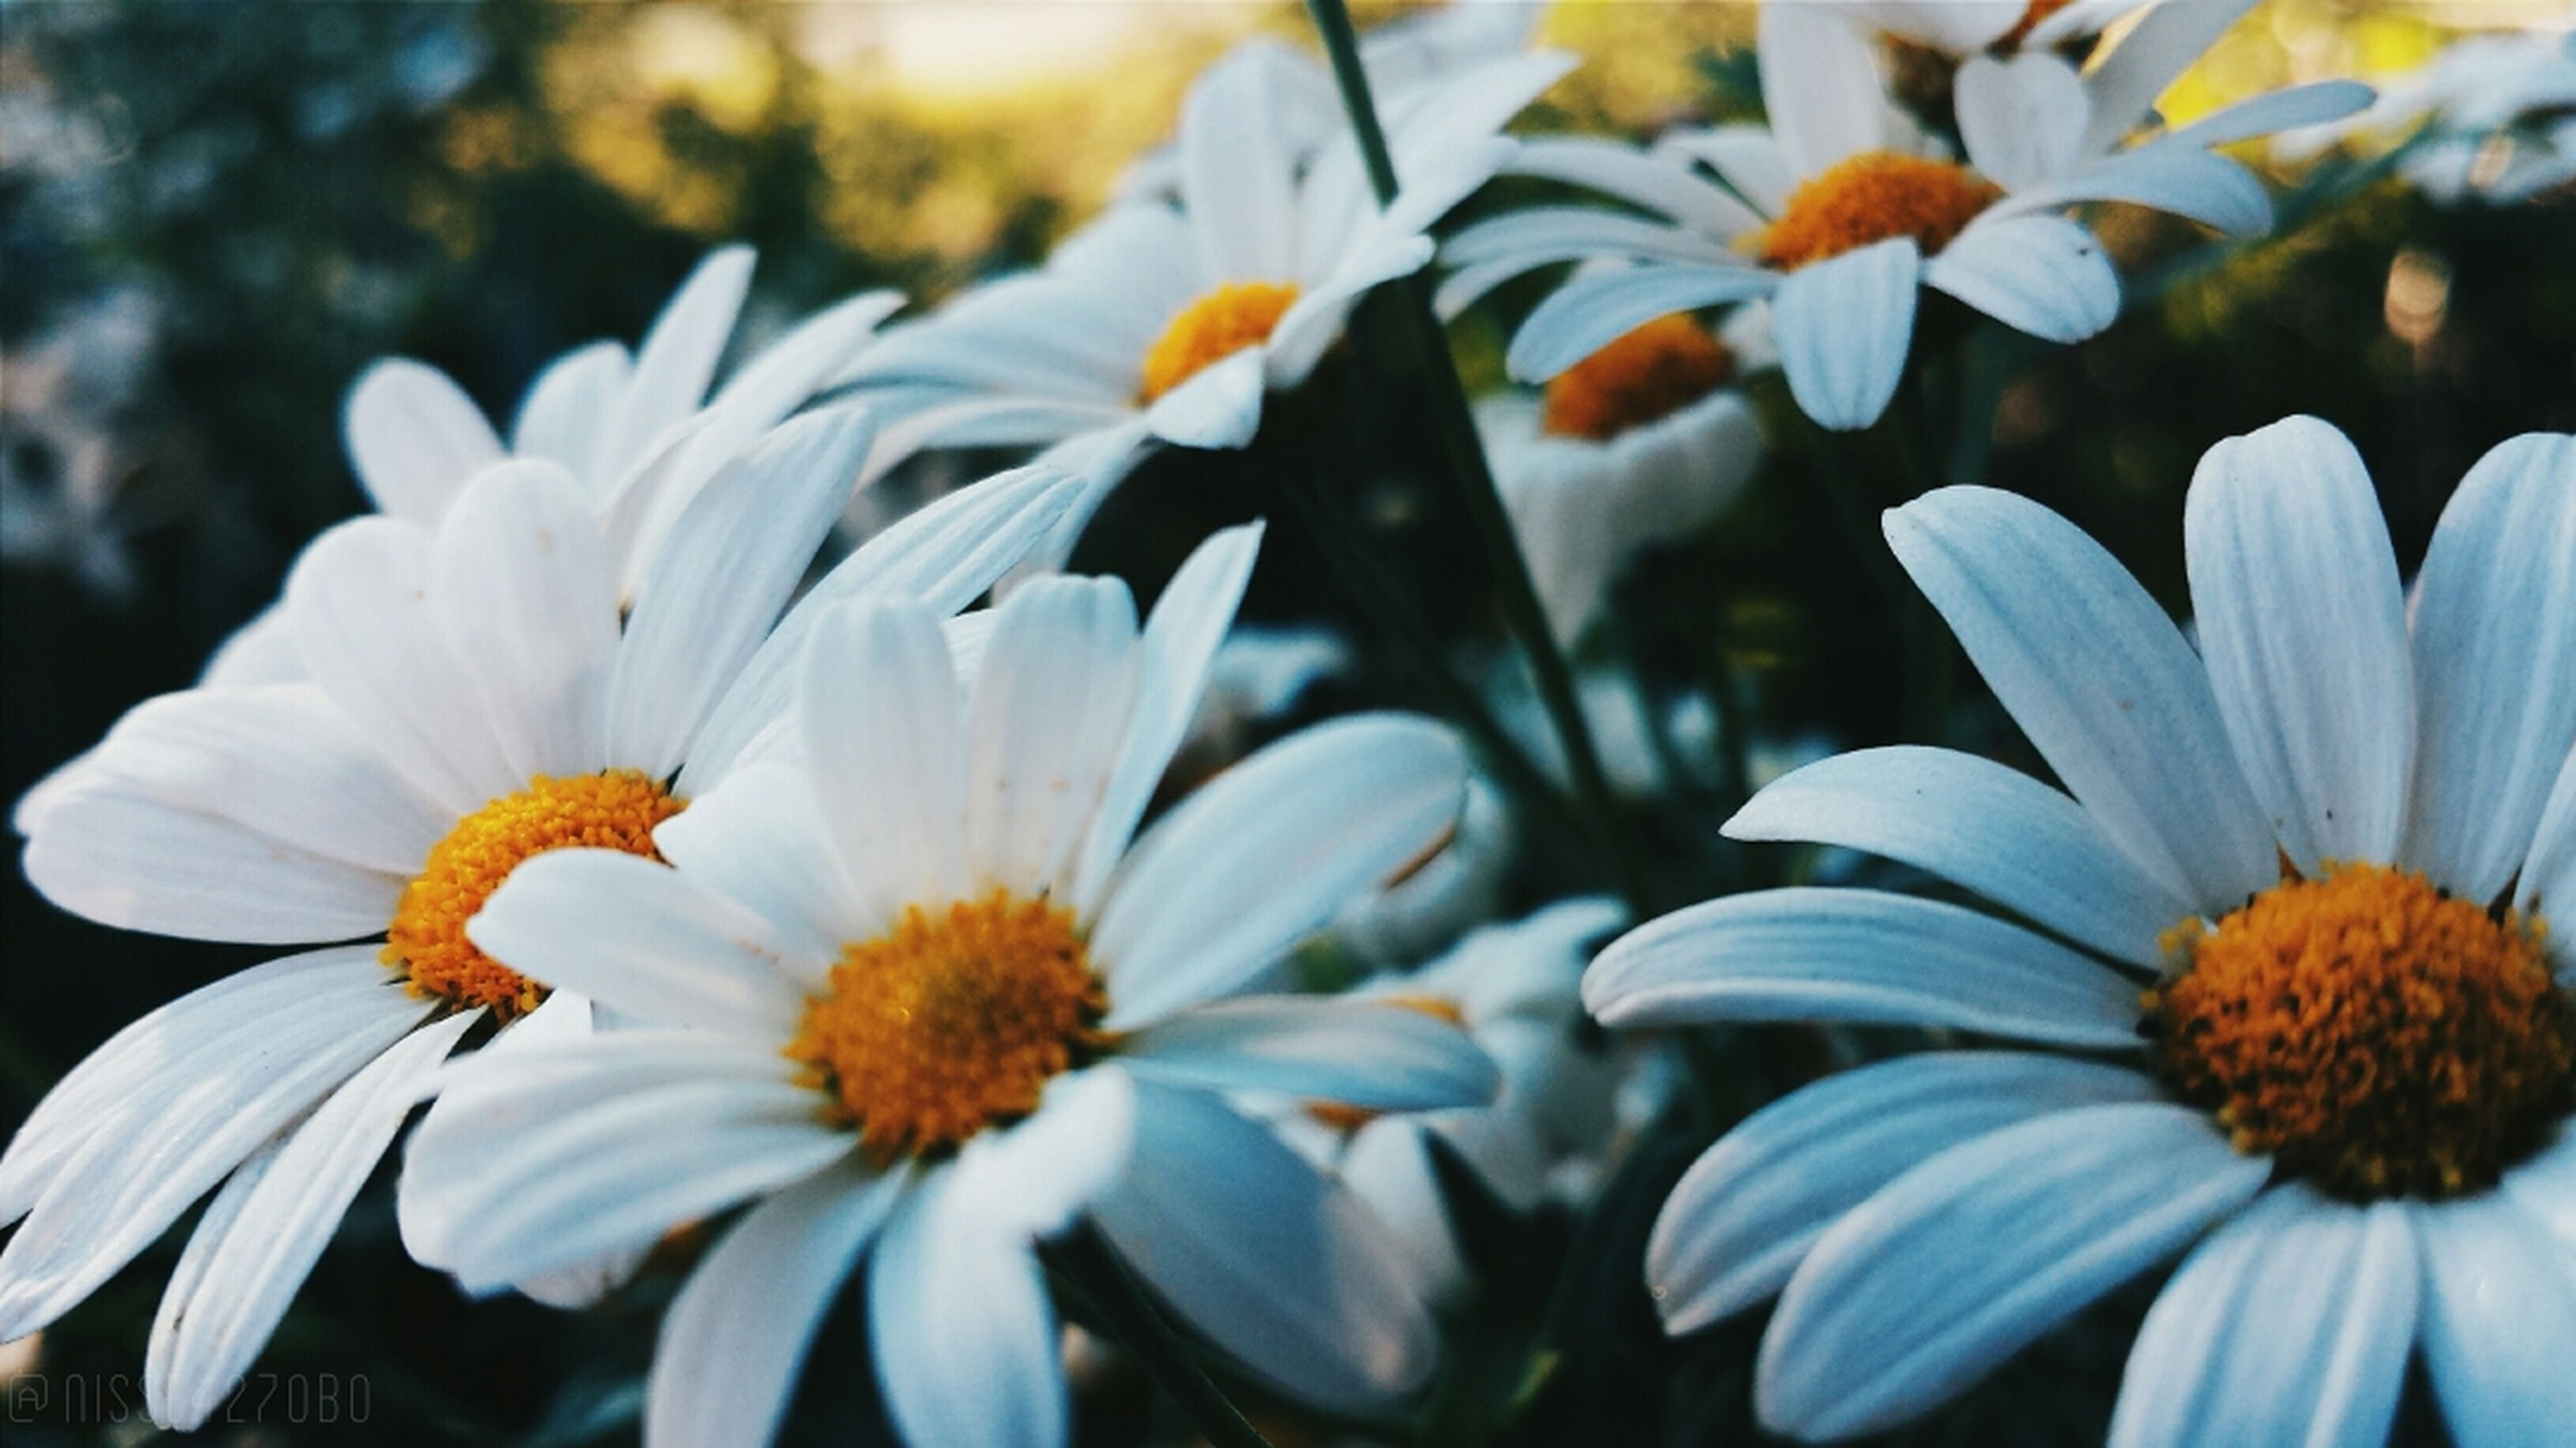 flower, petal, freshness, fragility, flower head, growth, beauty in nature, blooming, pollen, daisy, close-up, white color, nature, focus on foreground, plant, yellow, in bloom, high angle view, stamen, blossom